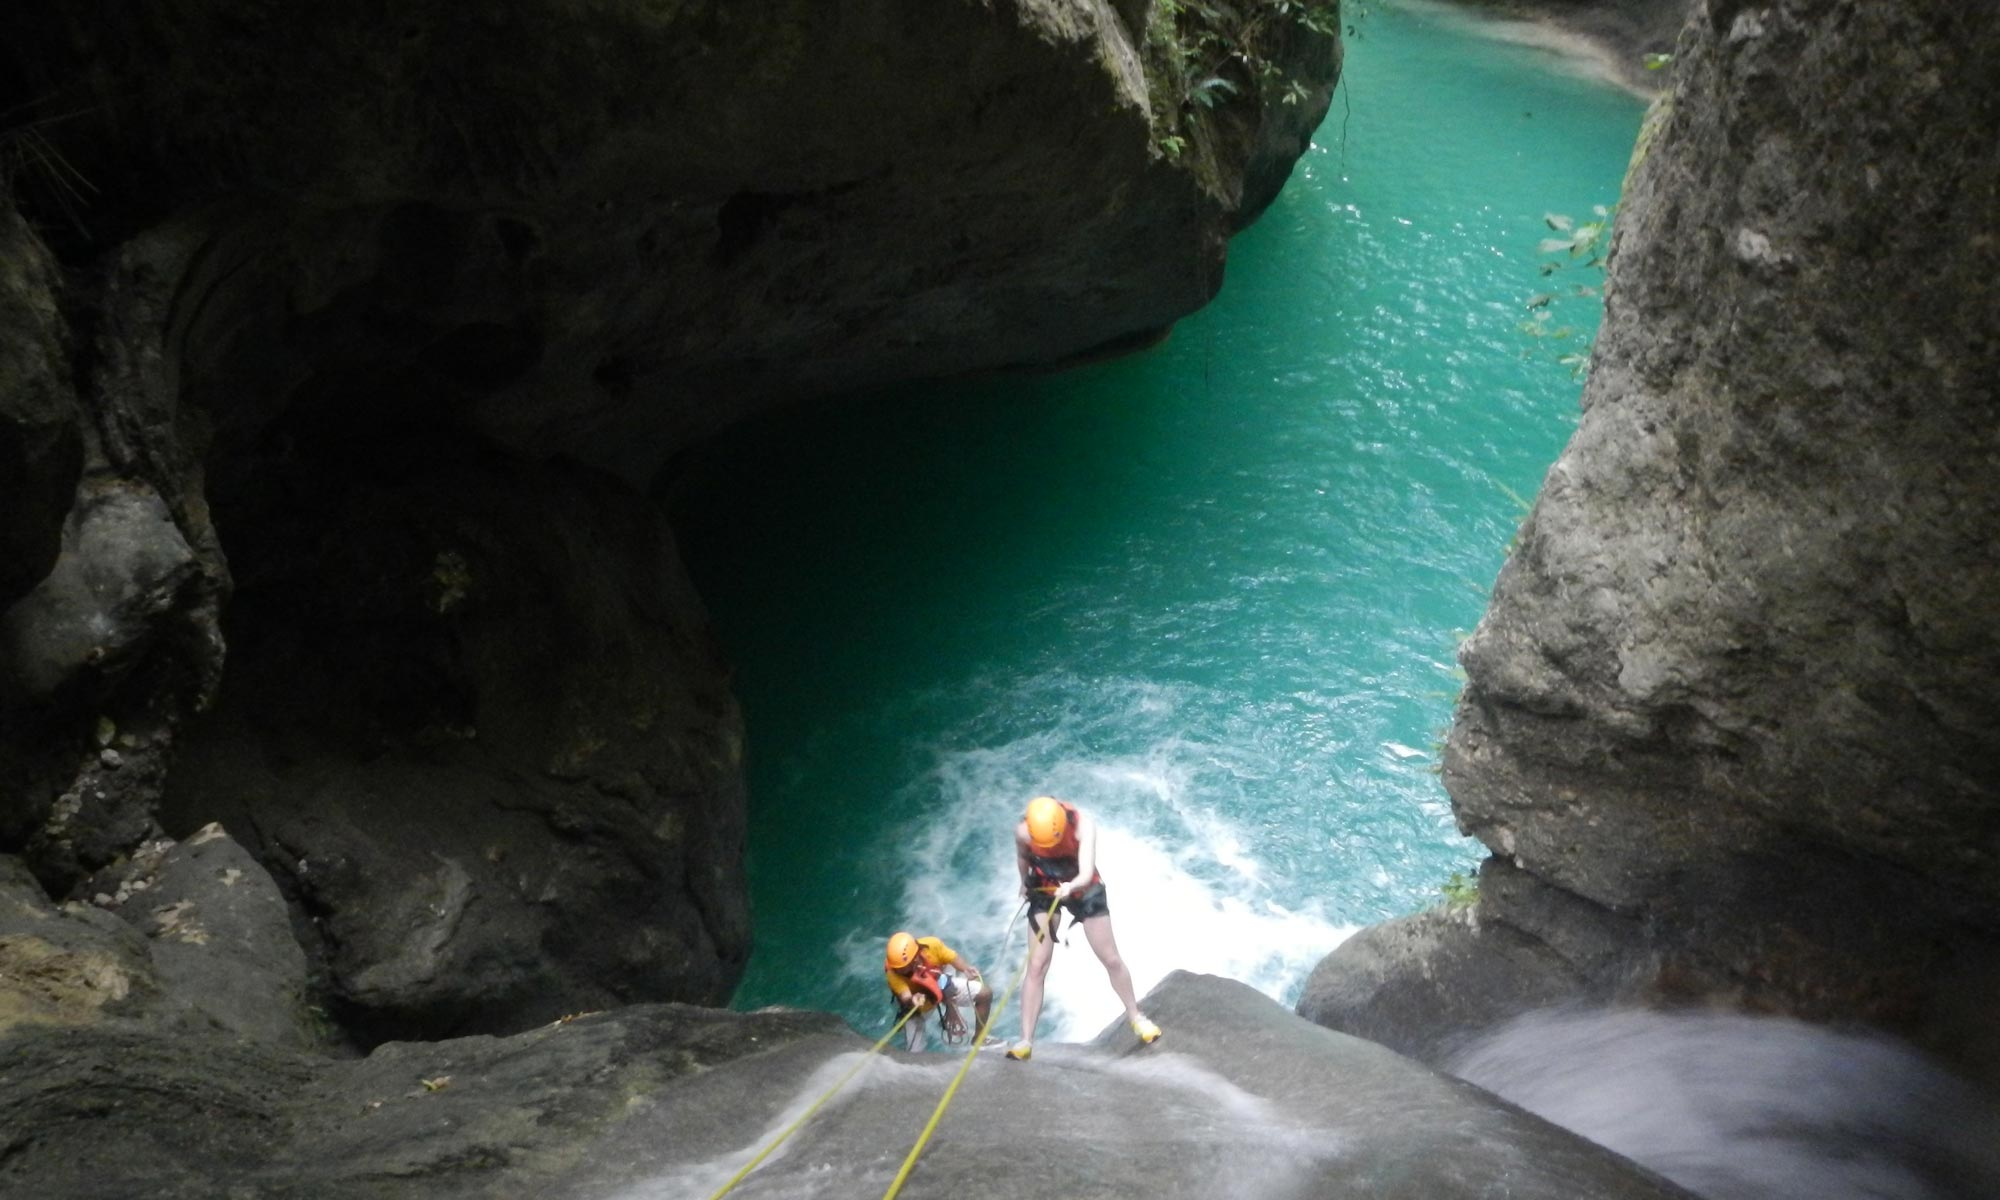 Canyoning Tours at Tison Falls Cebu Philippines